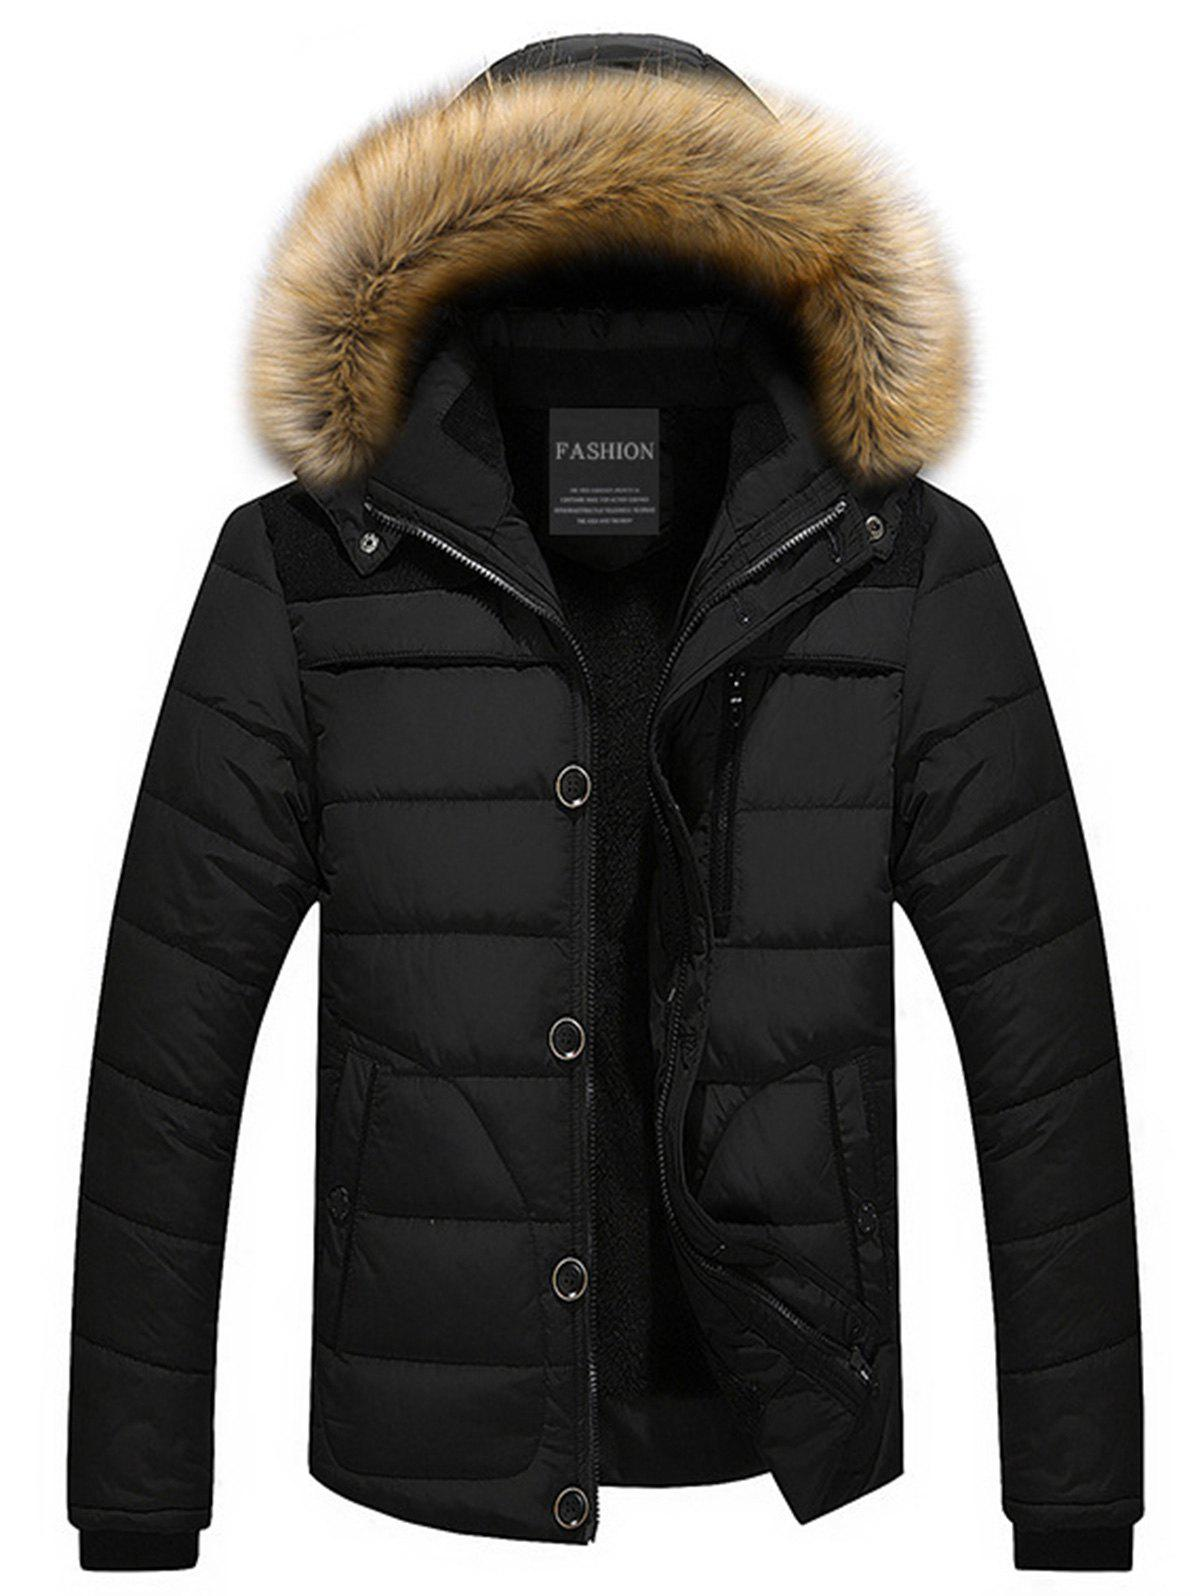 Zip Up Faux-fur Hooded Puffer Jacket faux fur collar puffer jacket